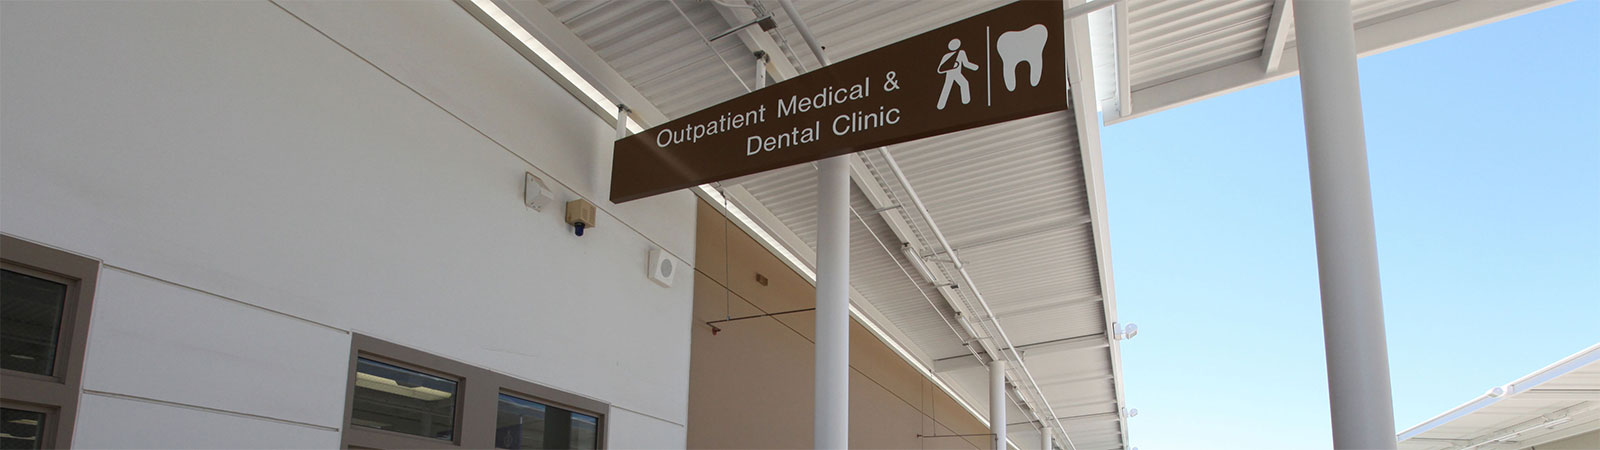 Sign of Outpatient Medical & Dental Clinic at a CCHCS institution